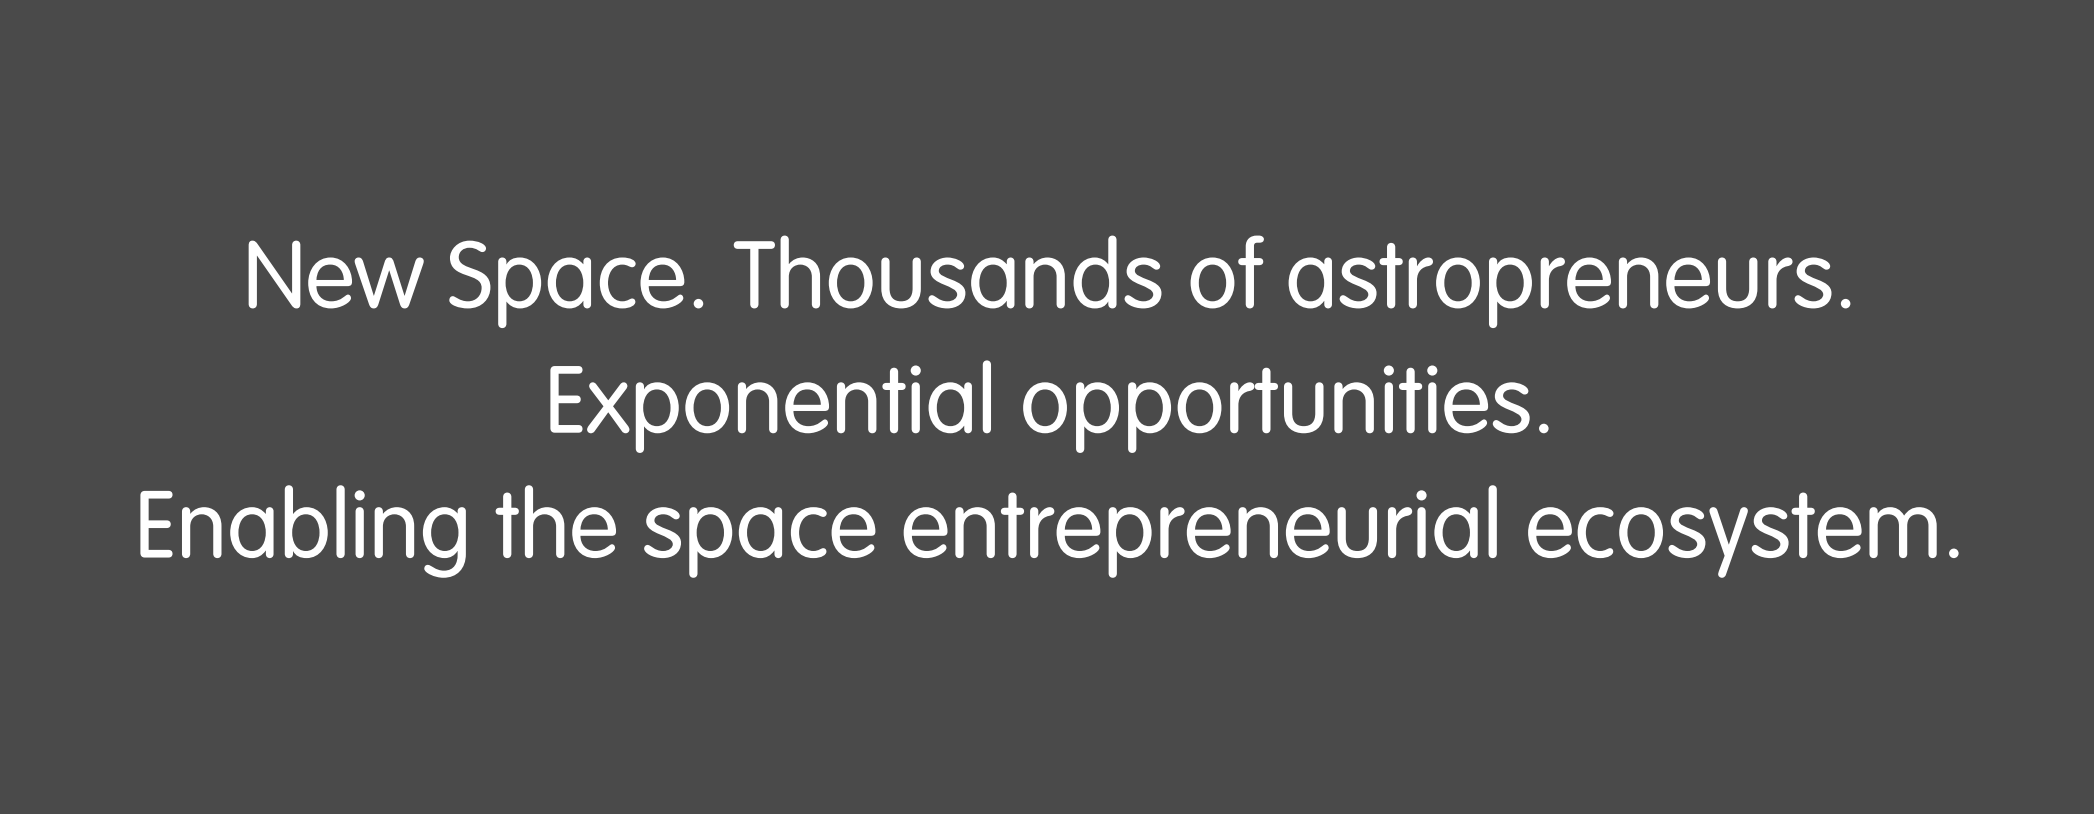 New Space. Thousands of astropreneurs. Exponential opportunities. Enabling the space entrepreneurial ecosystem.